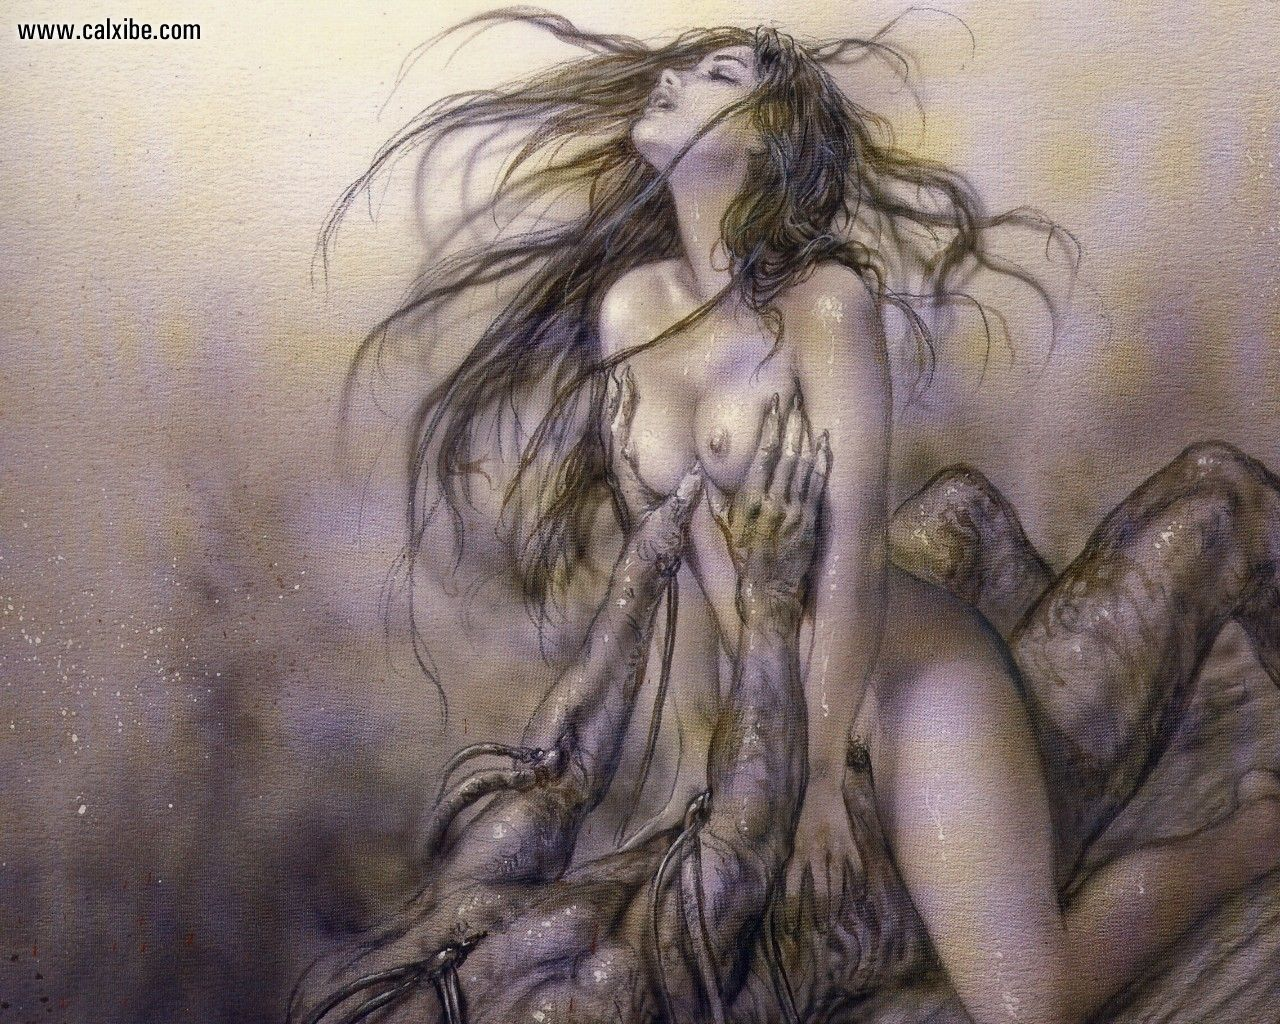 image Erotic fantasy art 2 louis royo